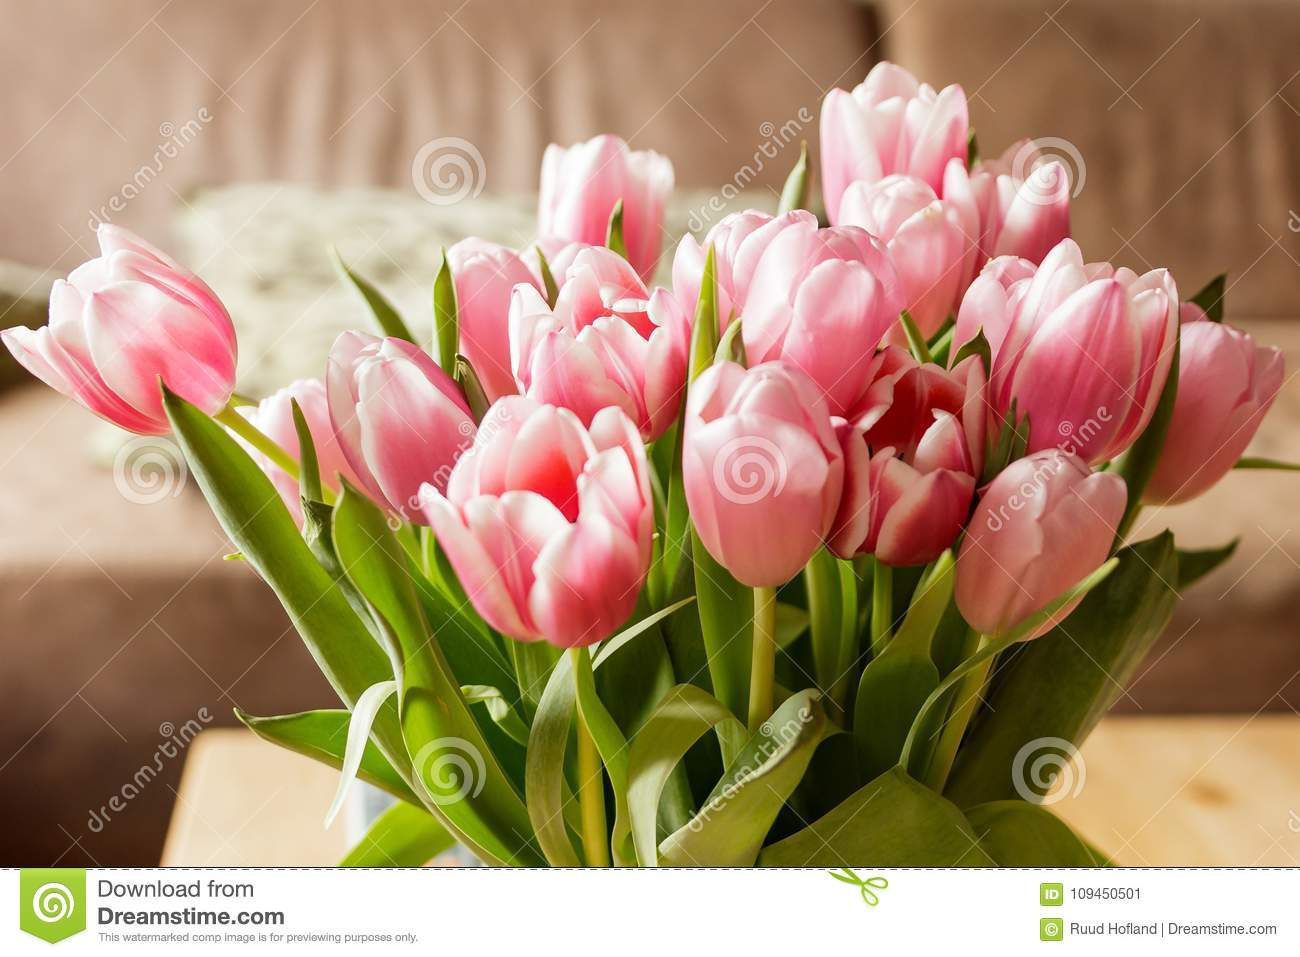 Tulips from holland - Valentine tulips